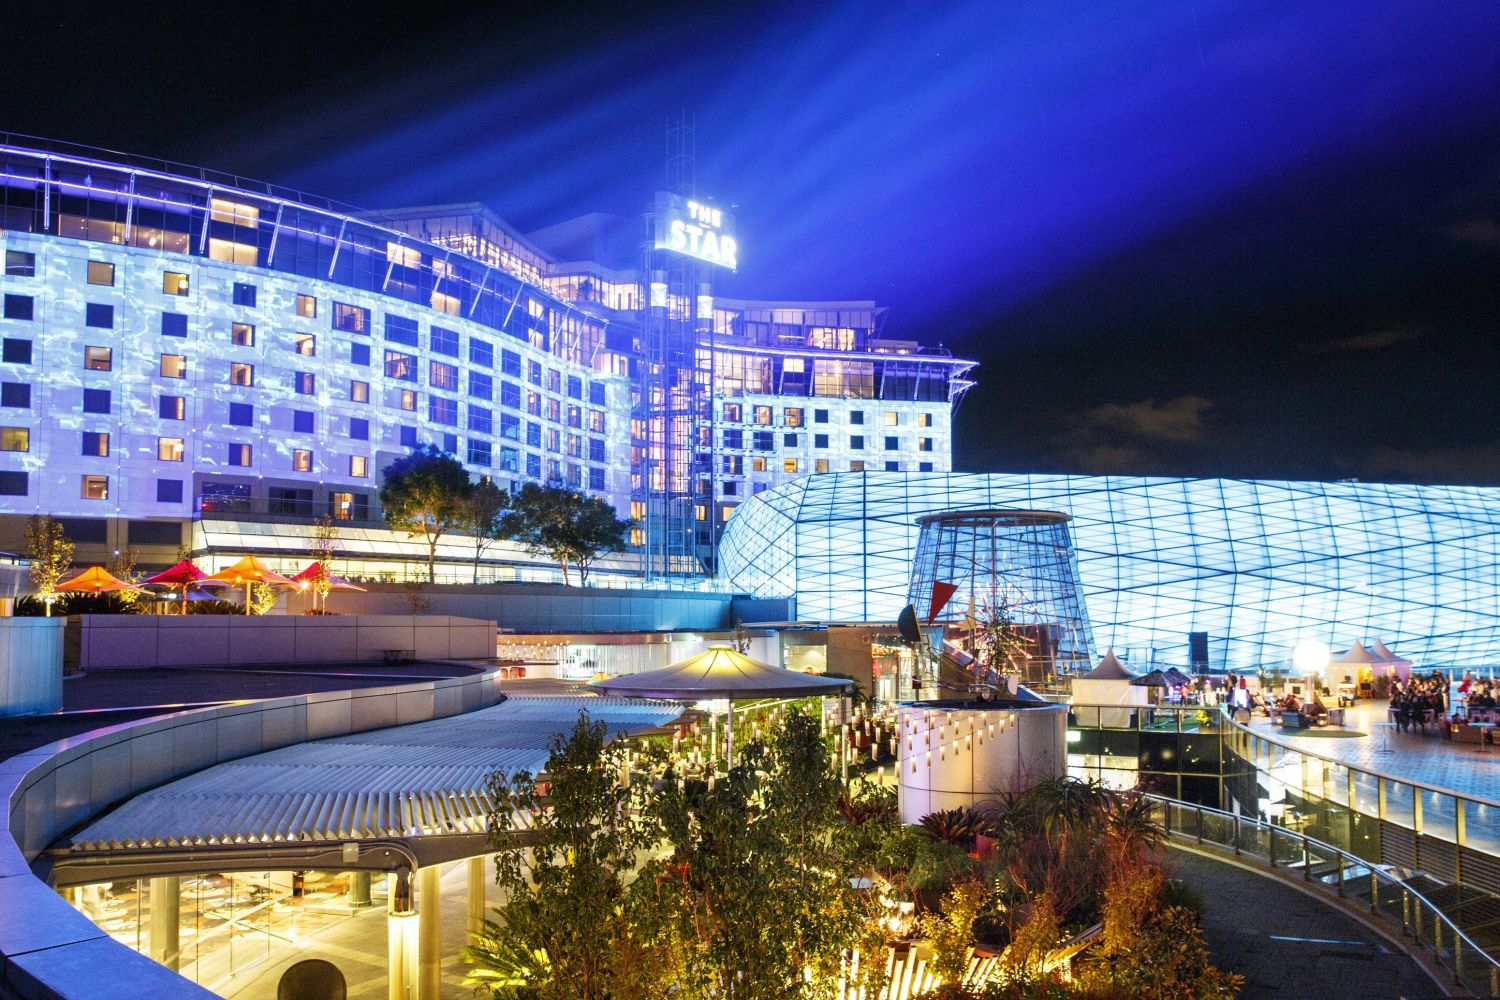 Star City Casino at Night, Pyrmont